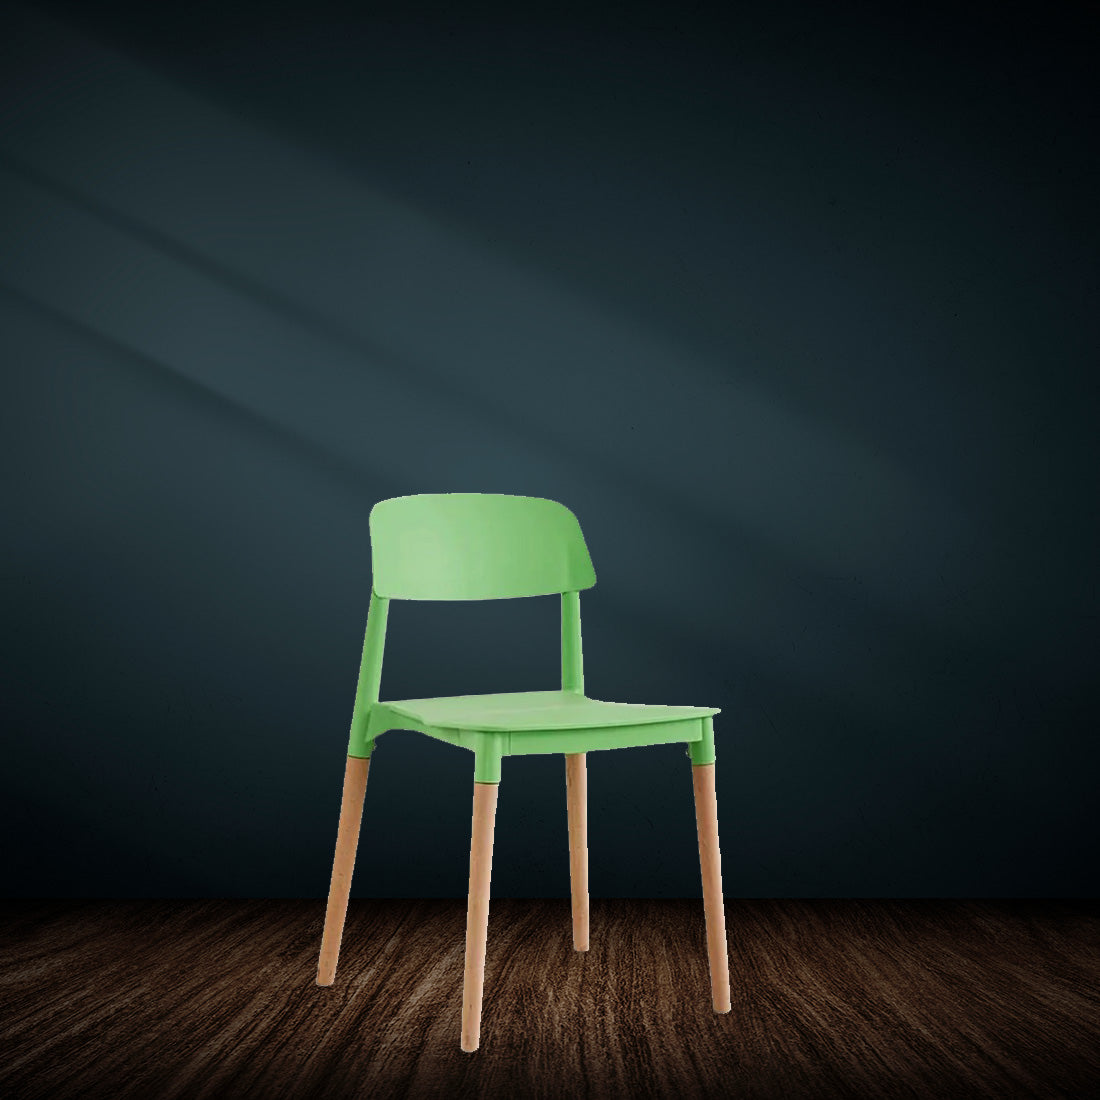 Detec™ Barcaf Chairs in 3 Colors